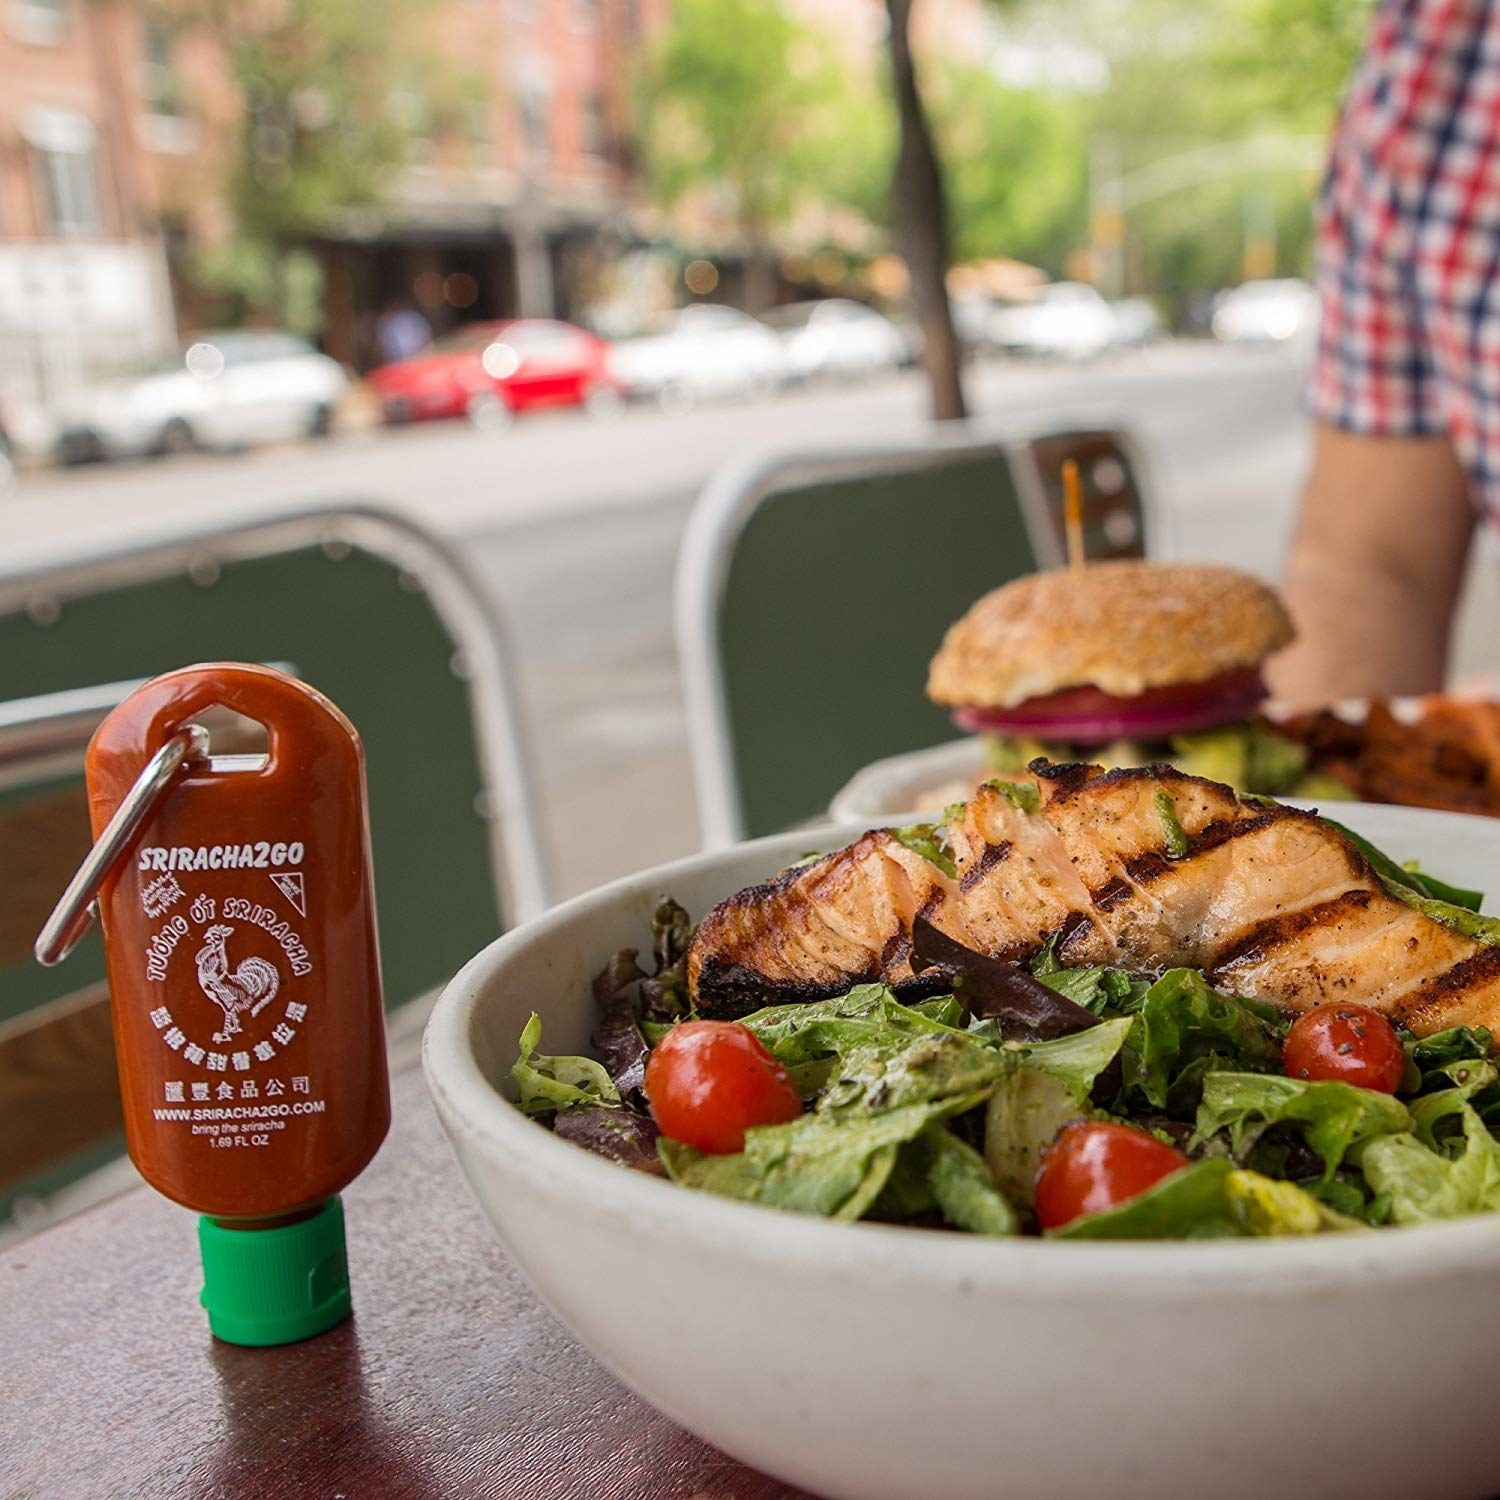 A filled Sriracha bottle keychain beside a meal at a restaurant